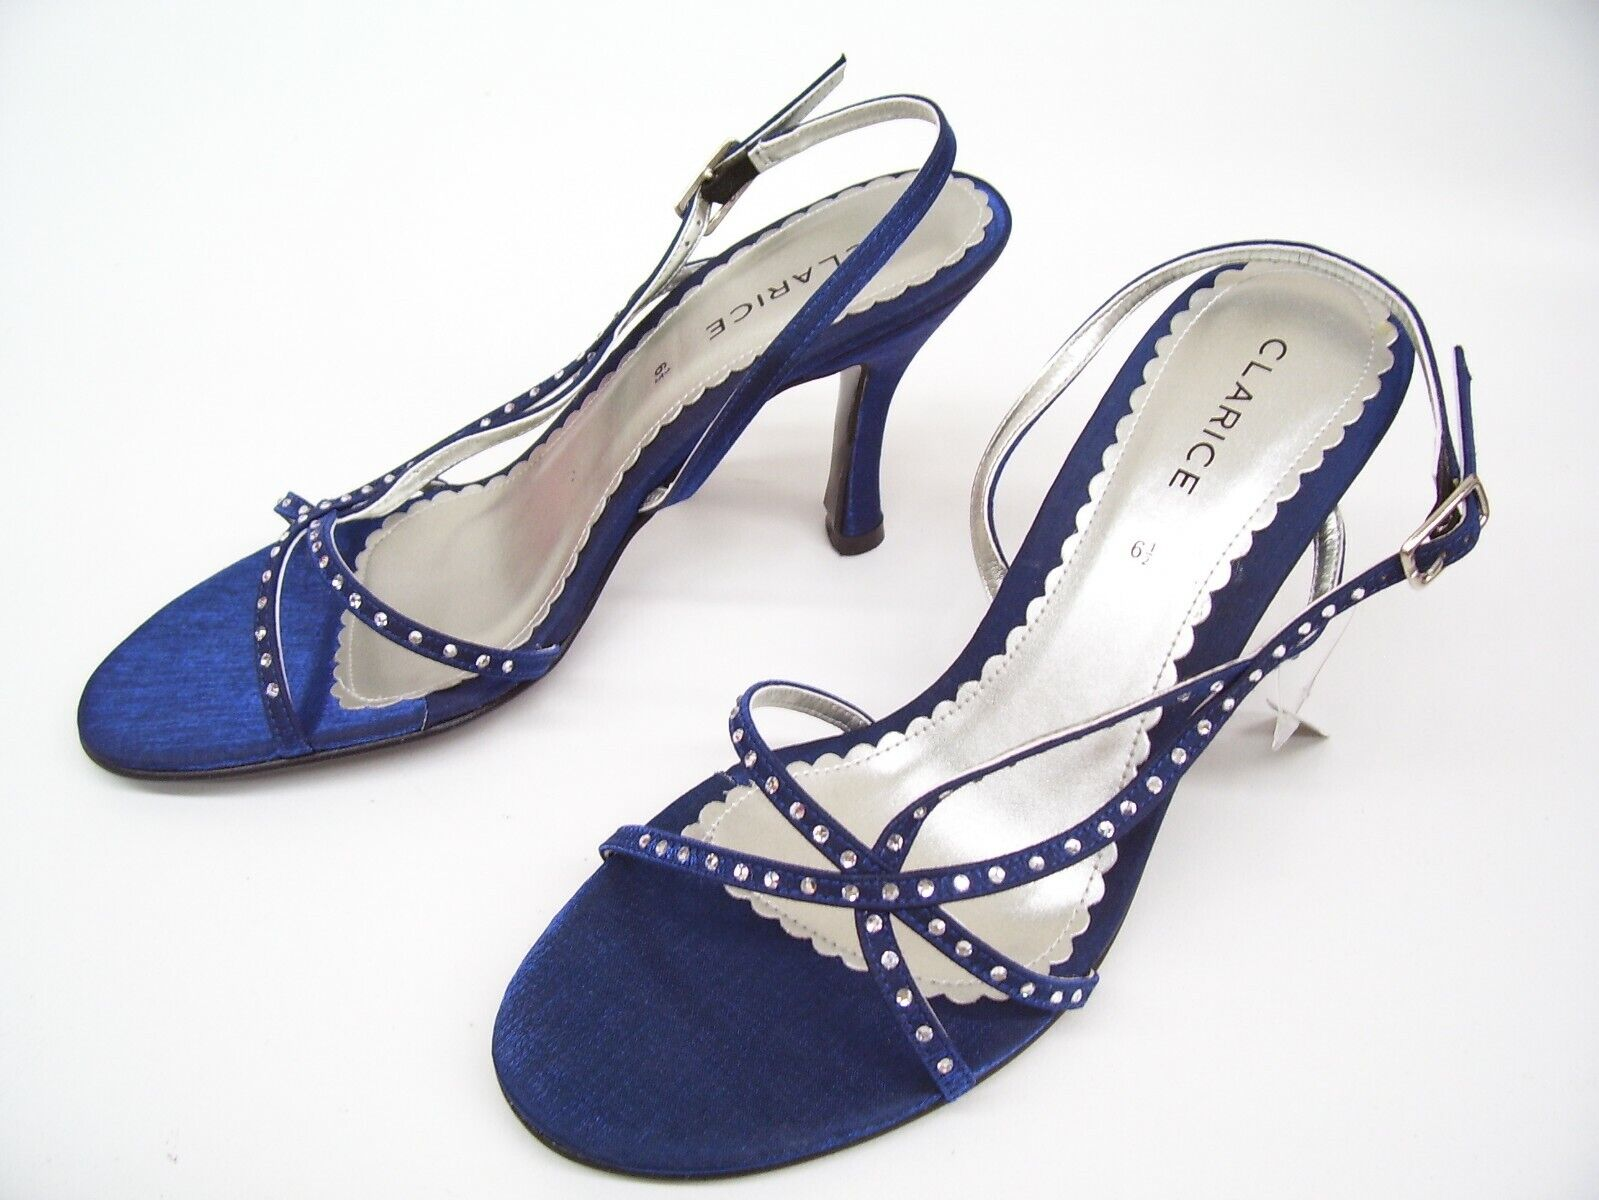 CLARICE NAVY SATIN LADIES FORMAL DRESS HEELS SHOES WEDDING PARTY BUDDY SIZE 6.5